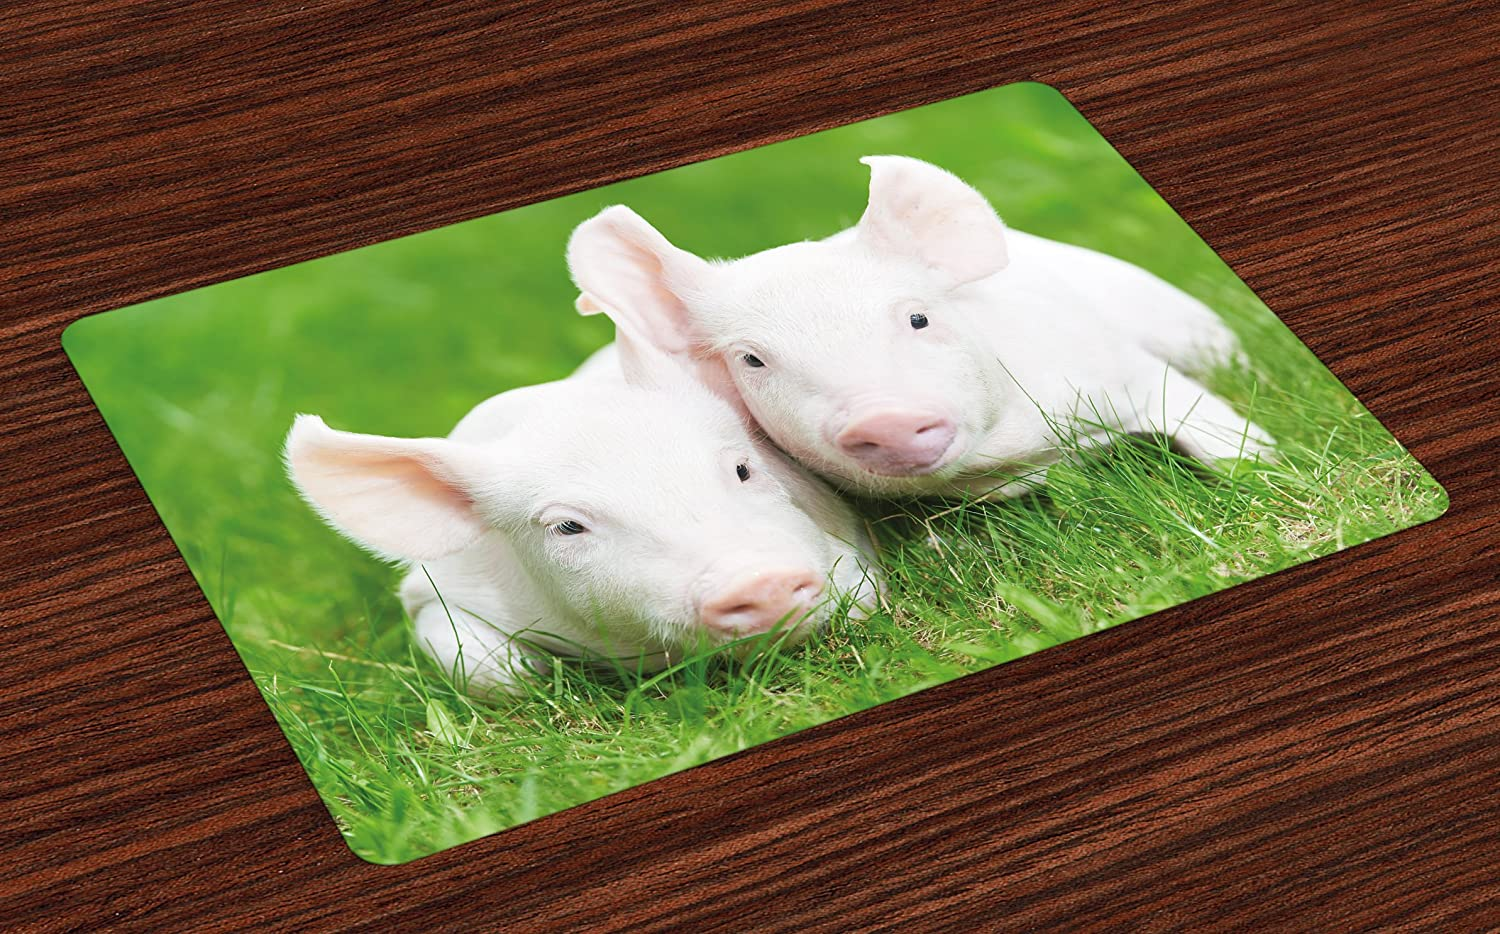 Washable Fabric Placemats for Dining Room Kitchen Table Decoration Pale Pink Green Two Young Baby Piglet on Green Grass Pig Farm Animal Barn Husbandry Agriculture Lunarable Cute Place Mats Set of 4